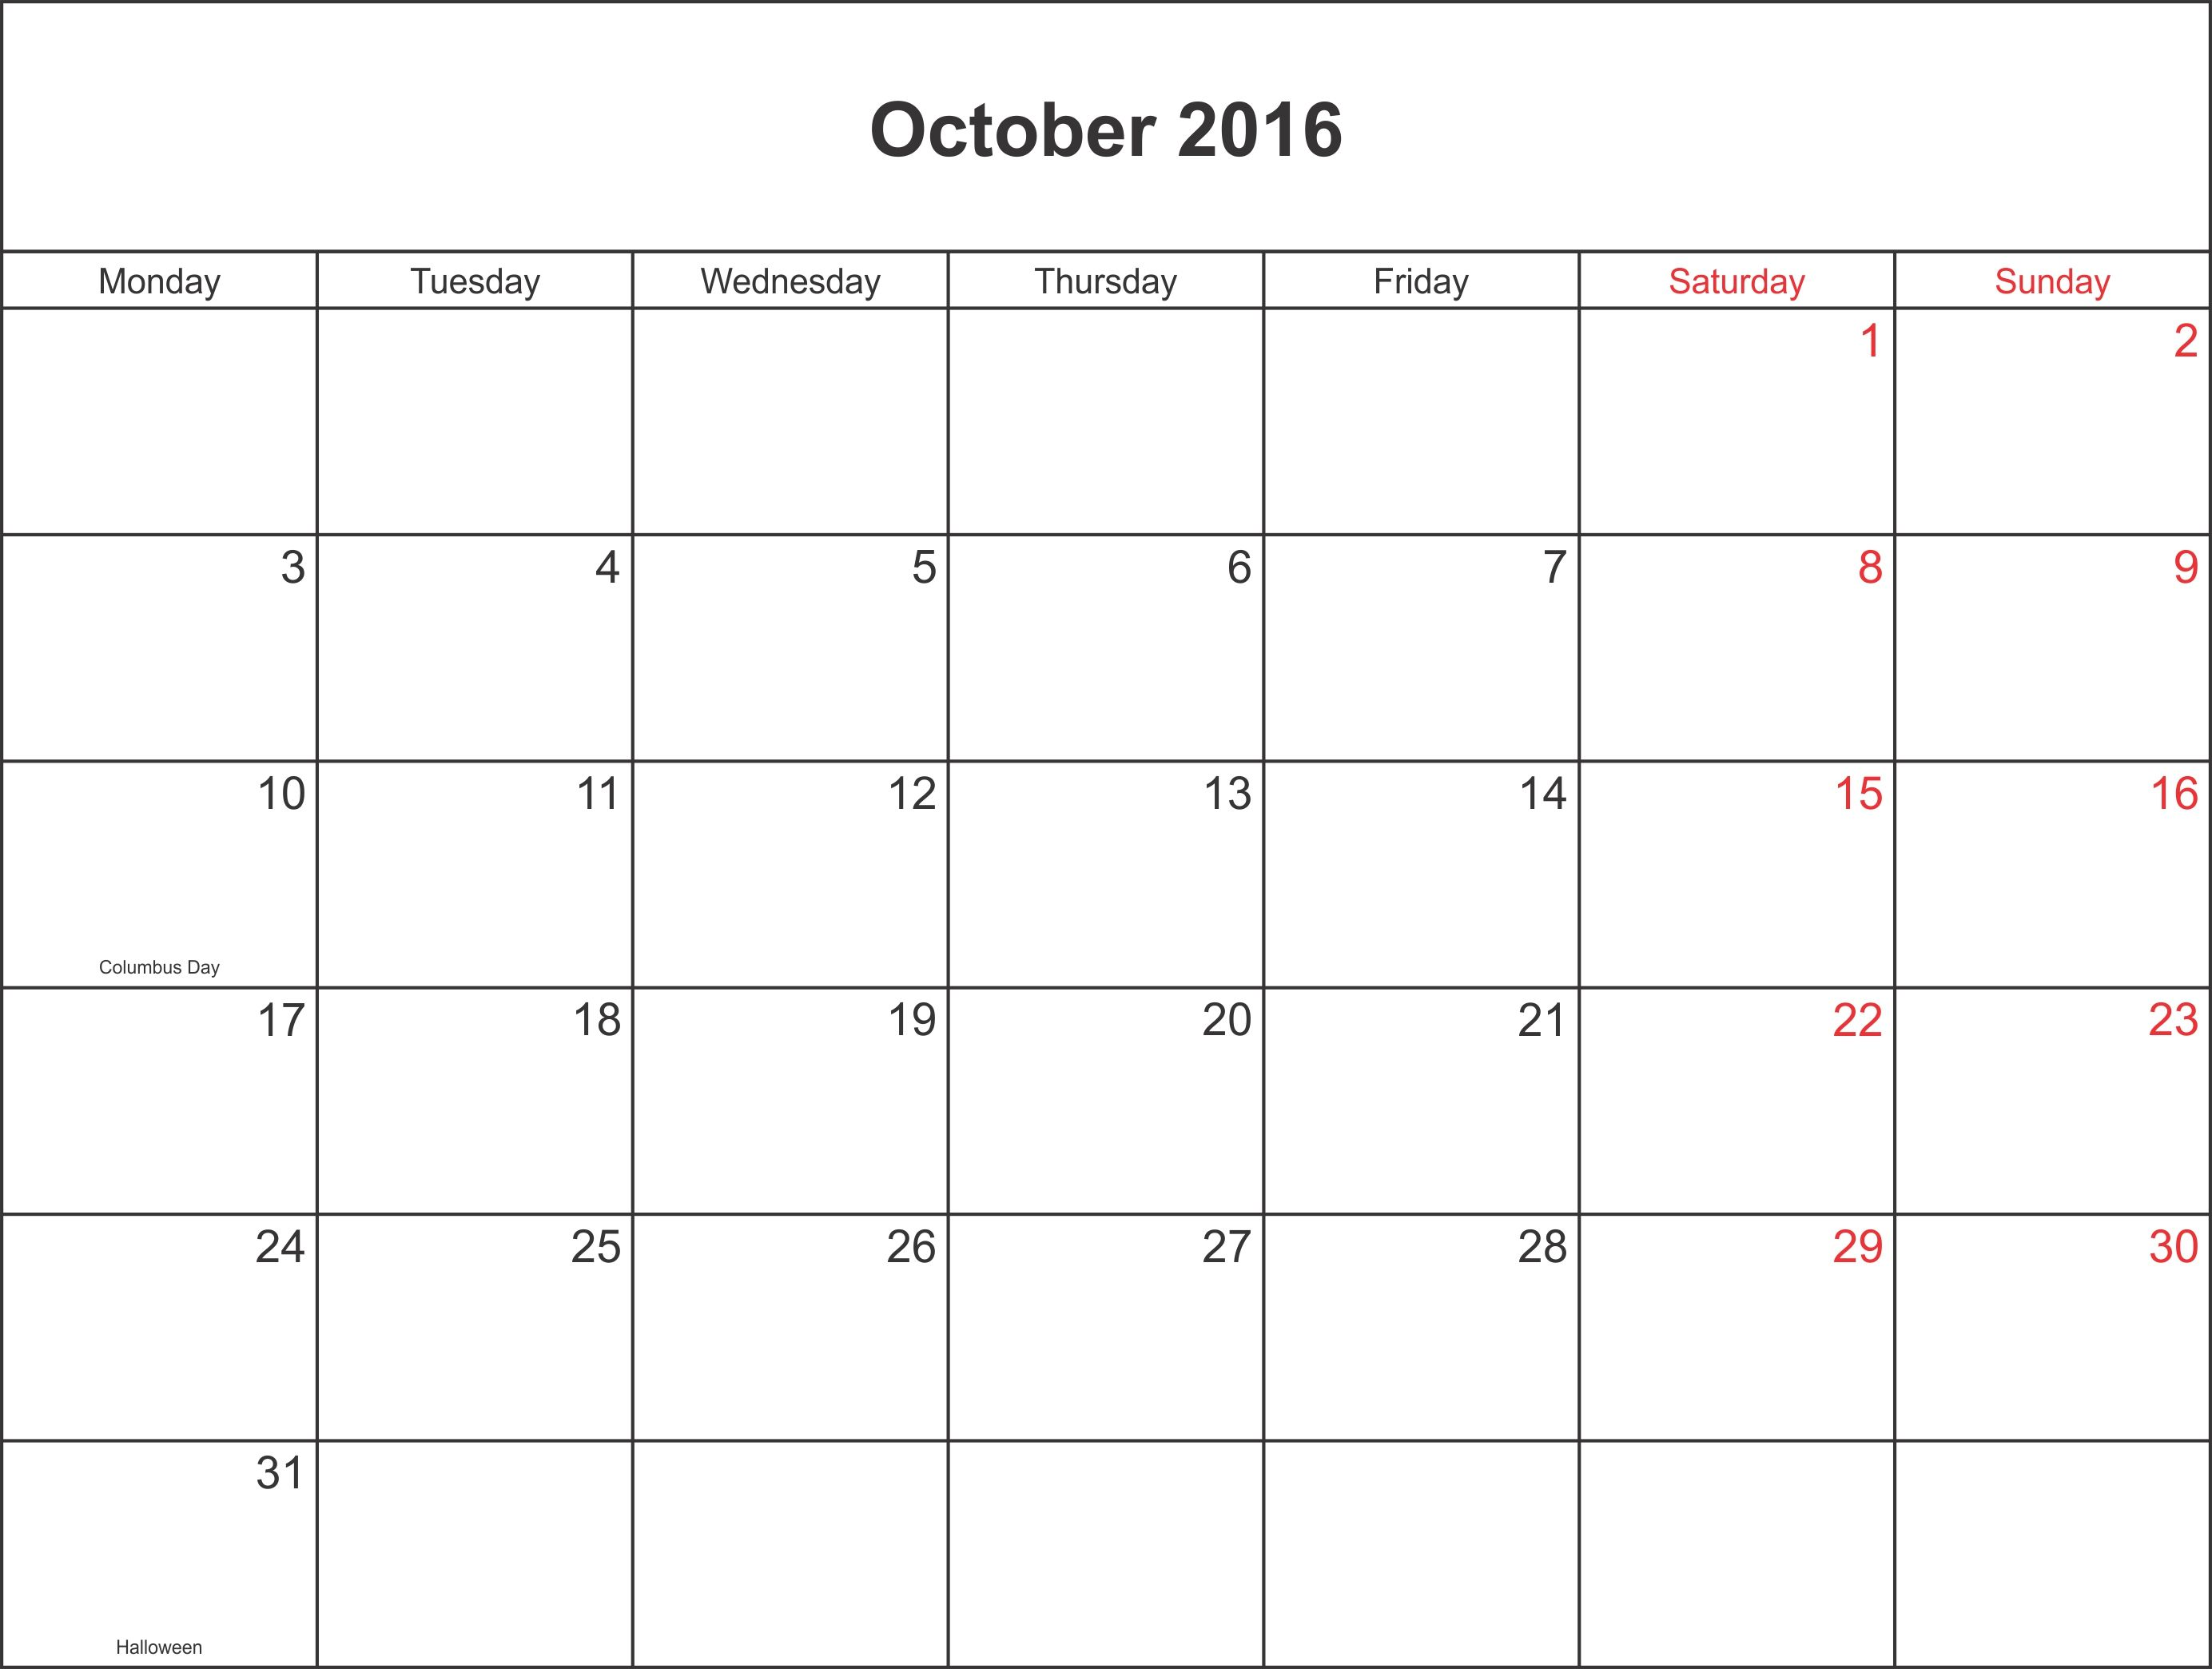 October 2016 Calendar Columbus Day | 2016 Oct Calendar | Pinterest ...